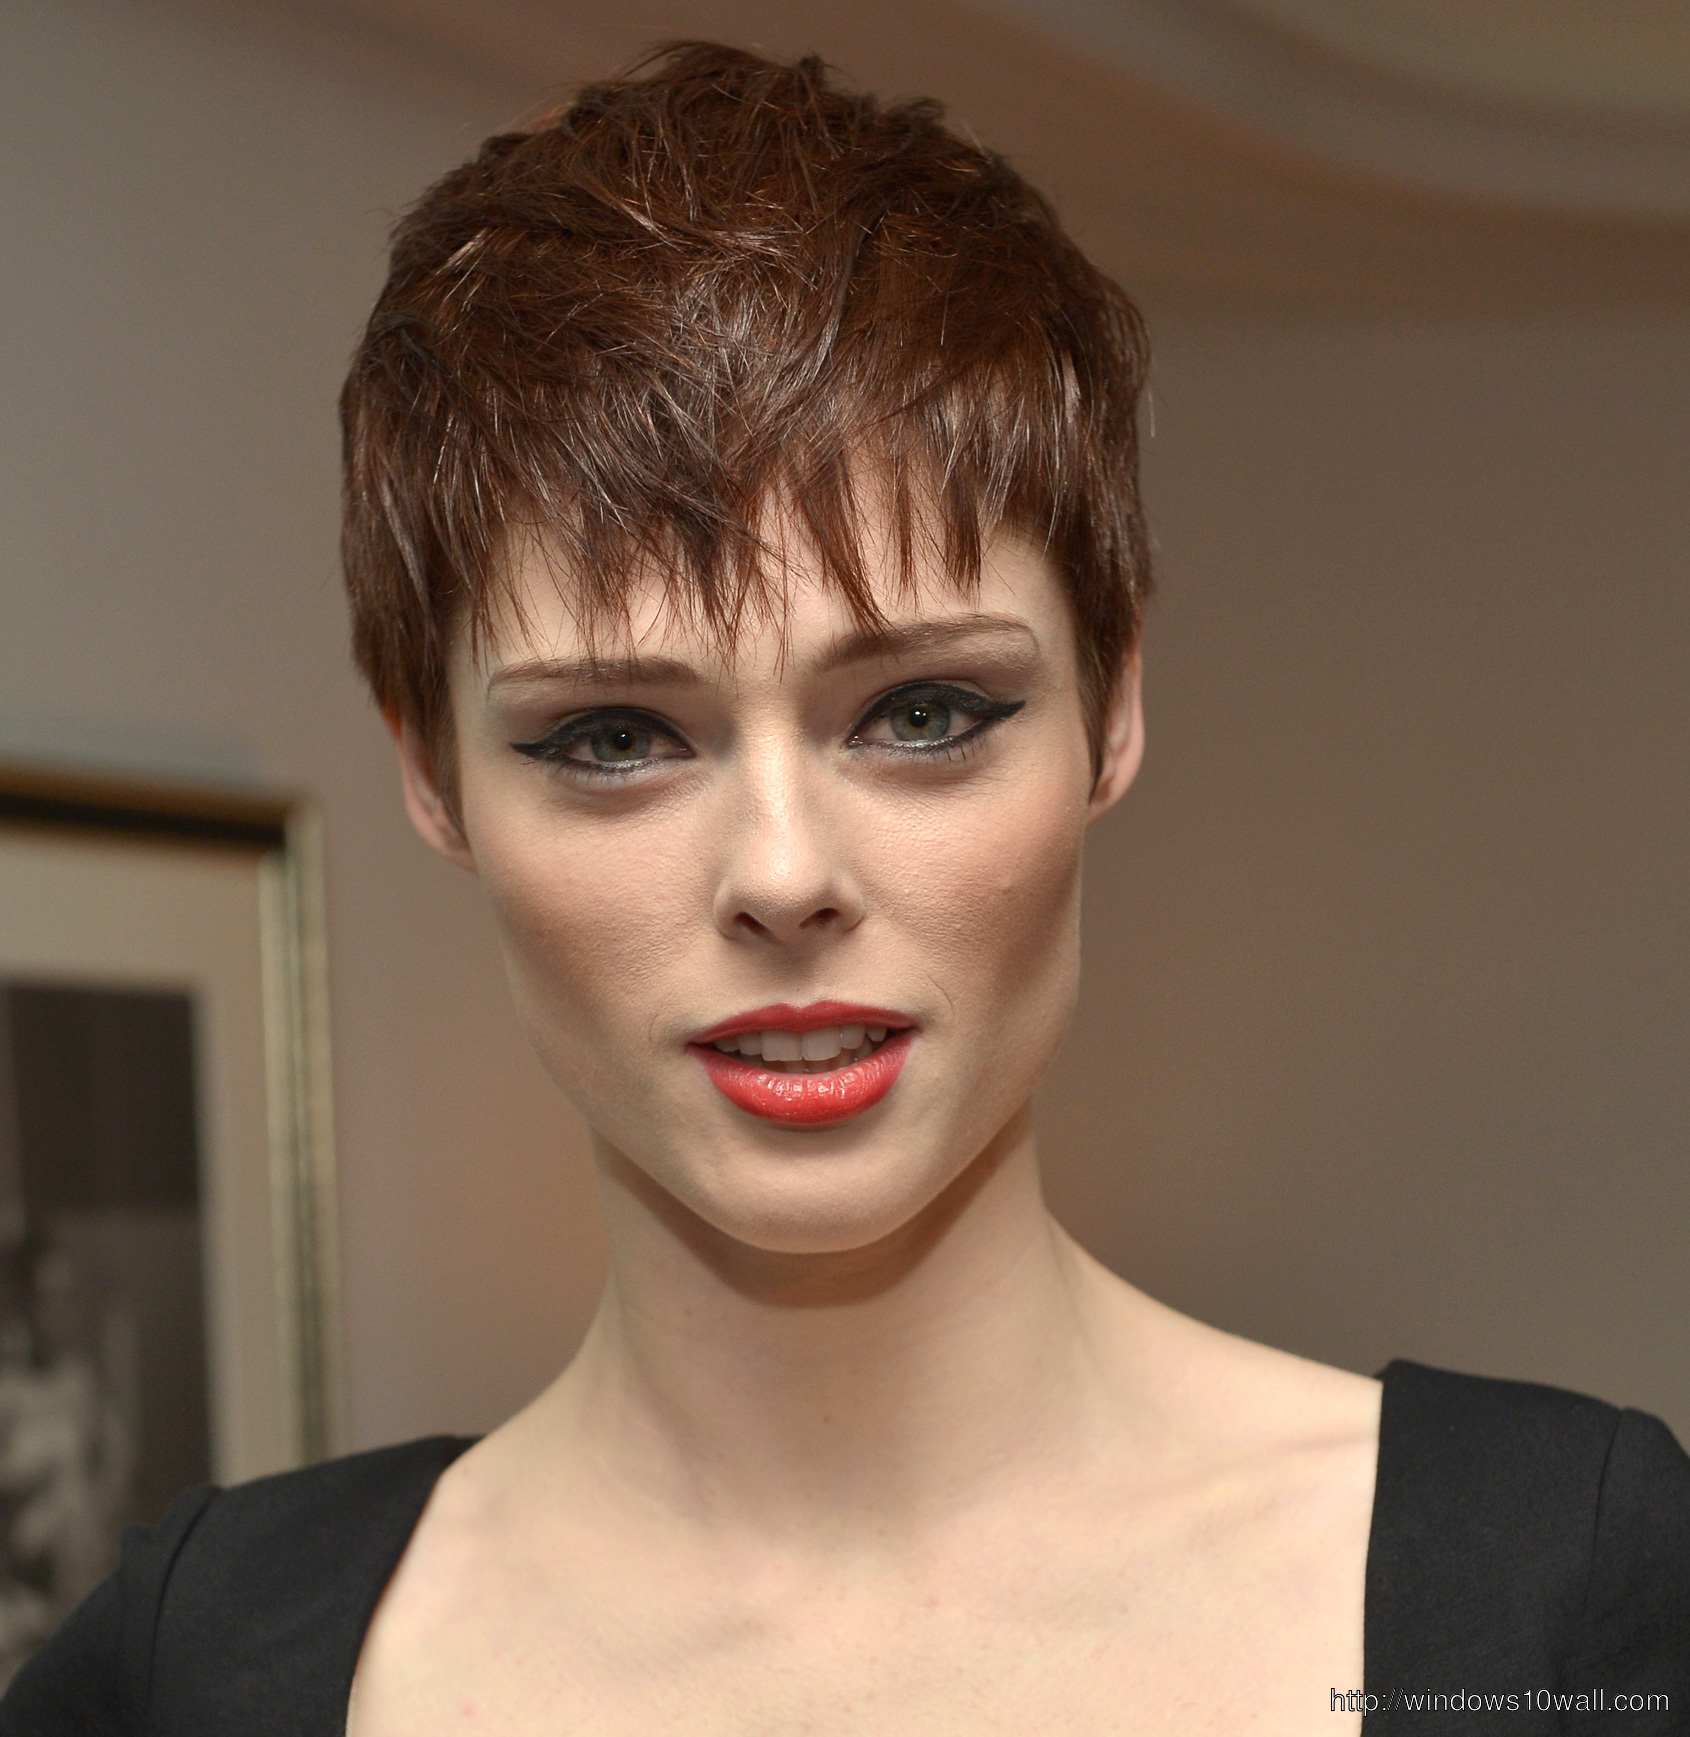 pixie-cut-hairstyles-2014-background-wallpaper